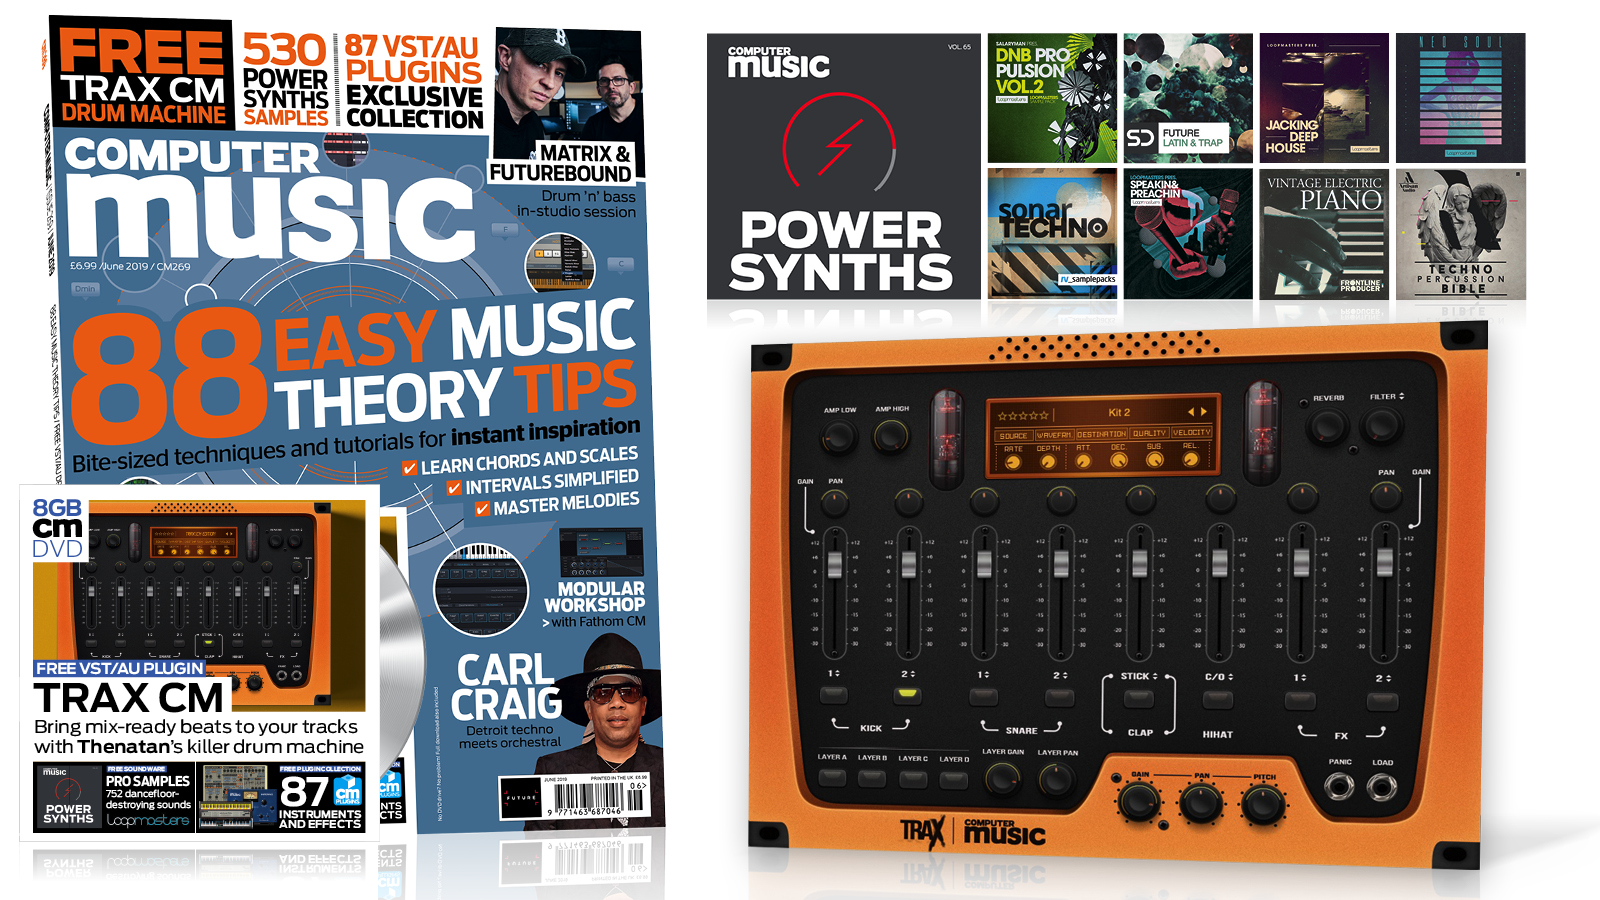 88 EASY MUSIC THEORY TIPS – Computer Music issue 269 is out now